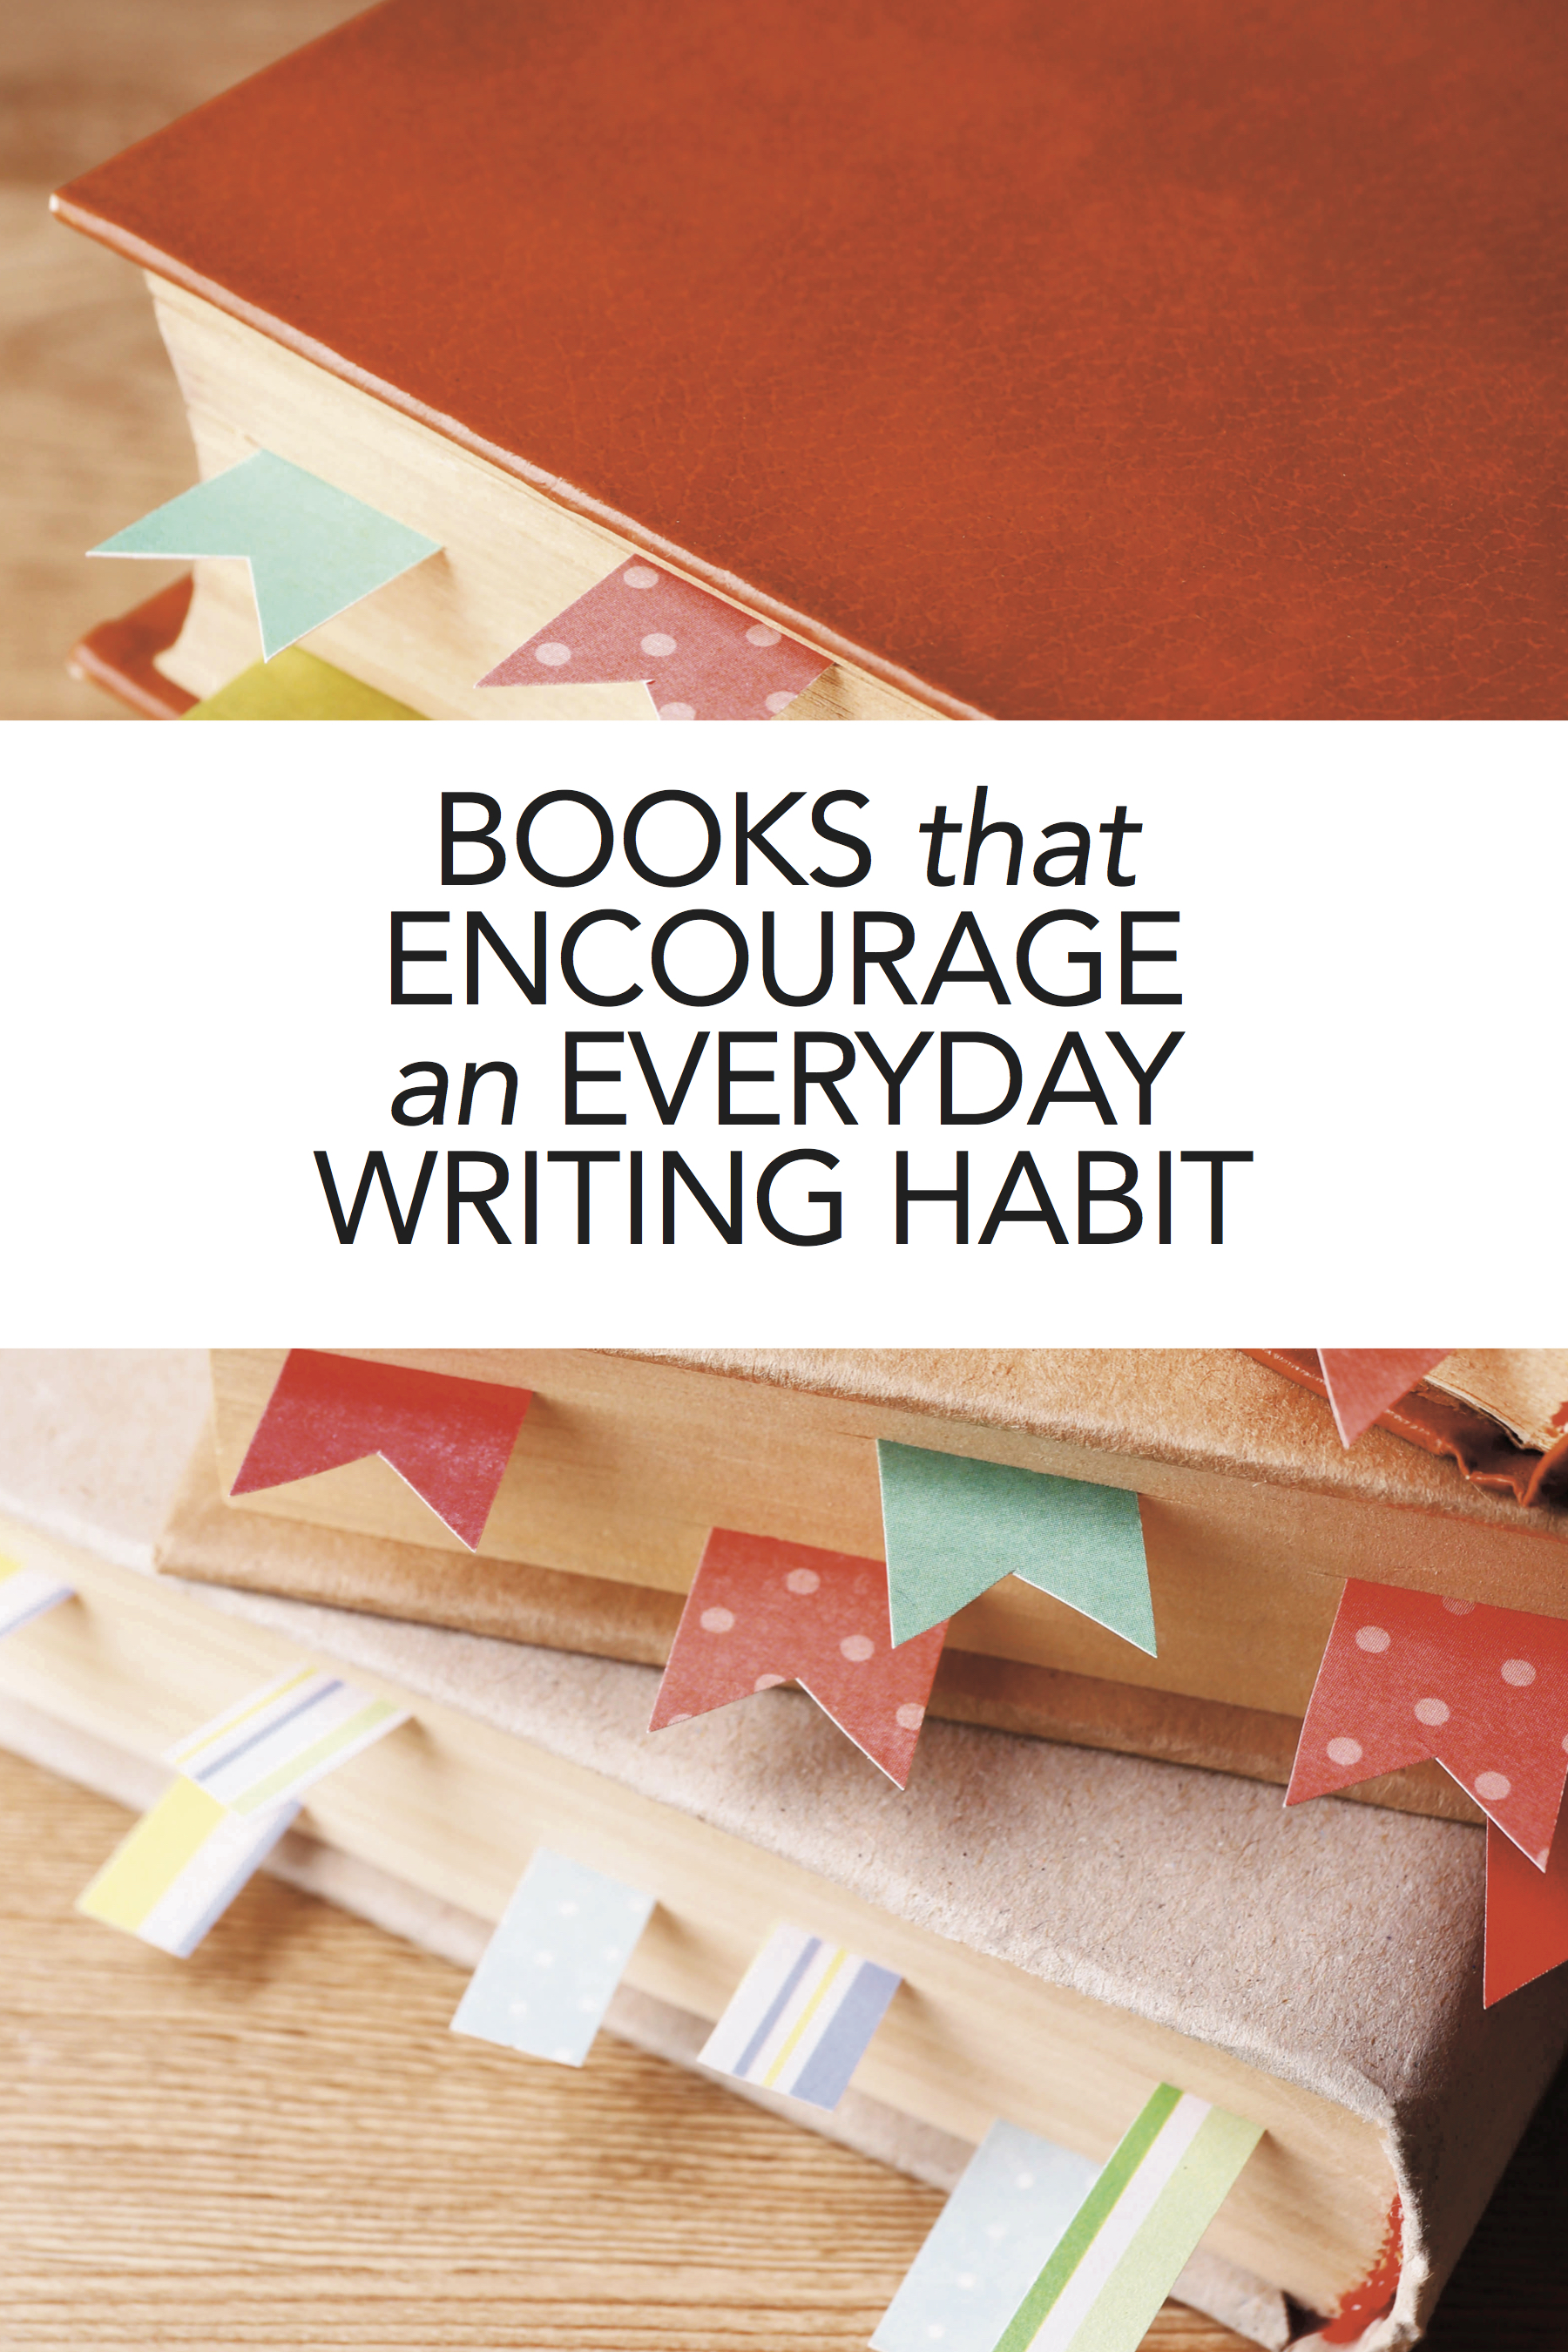 Encourage your young writers to fill in the blanks, doodle in the margins, and make these six getting-to-know-yourself journals their own. Not only do they make fun writing exercises today, they'll likely be treasured memories down the road.